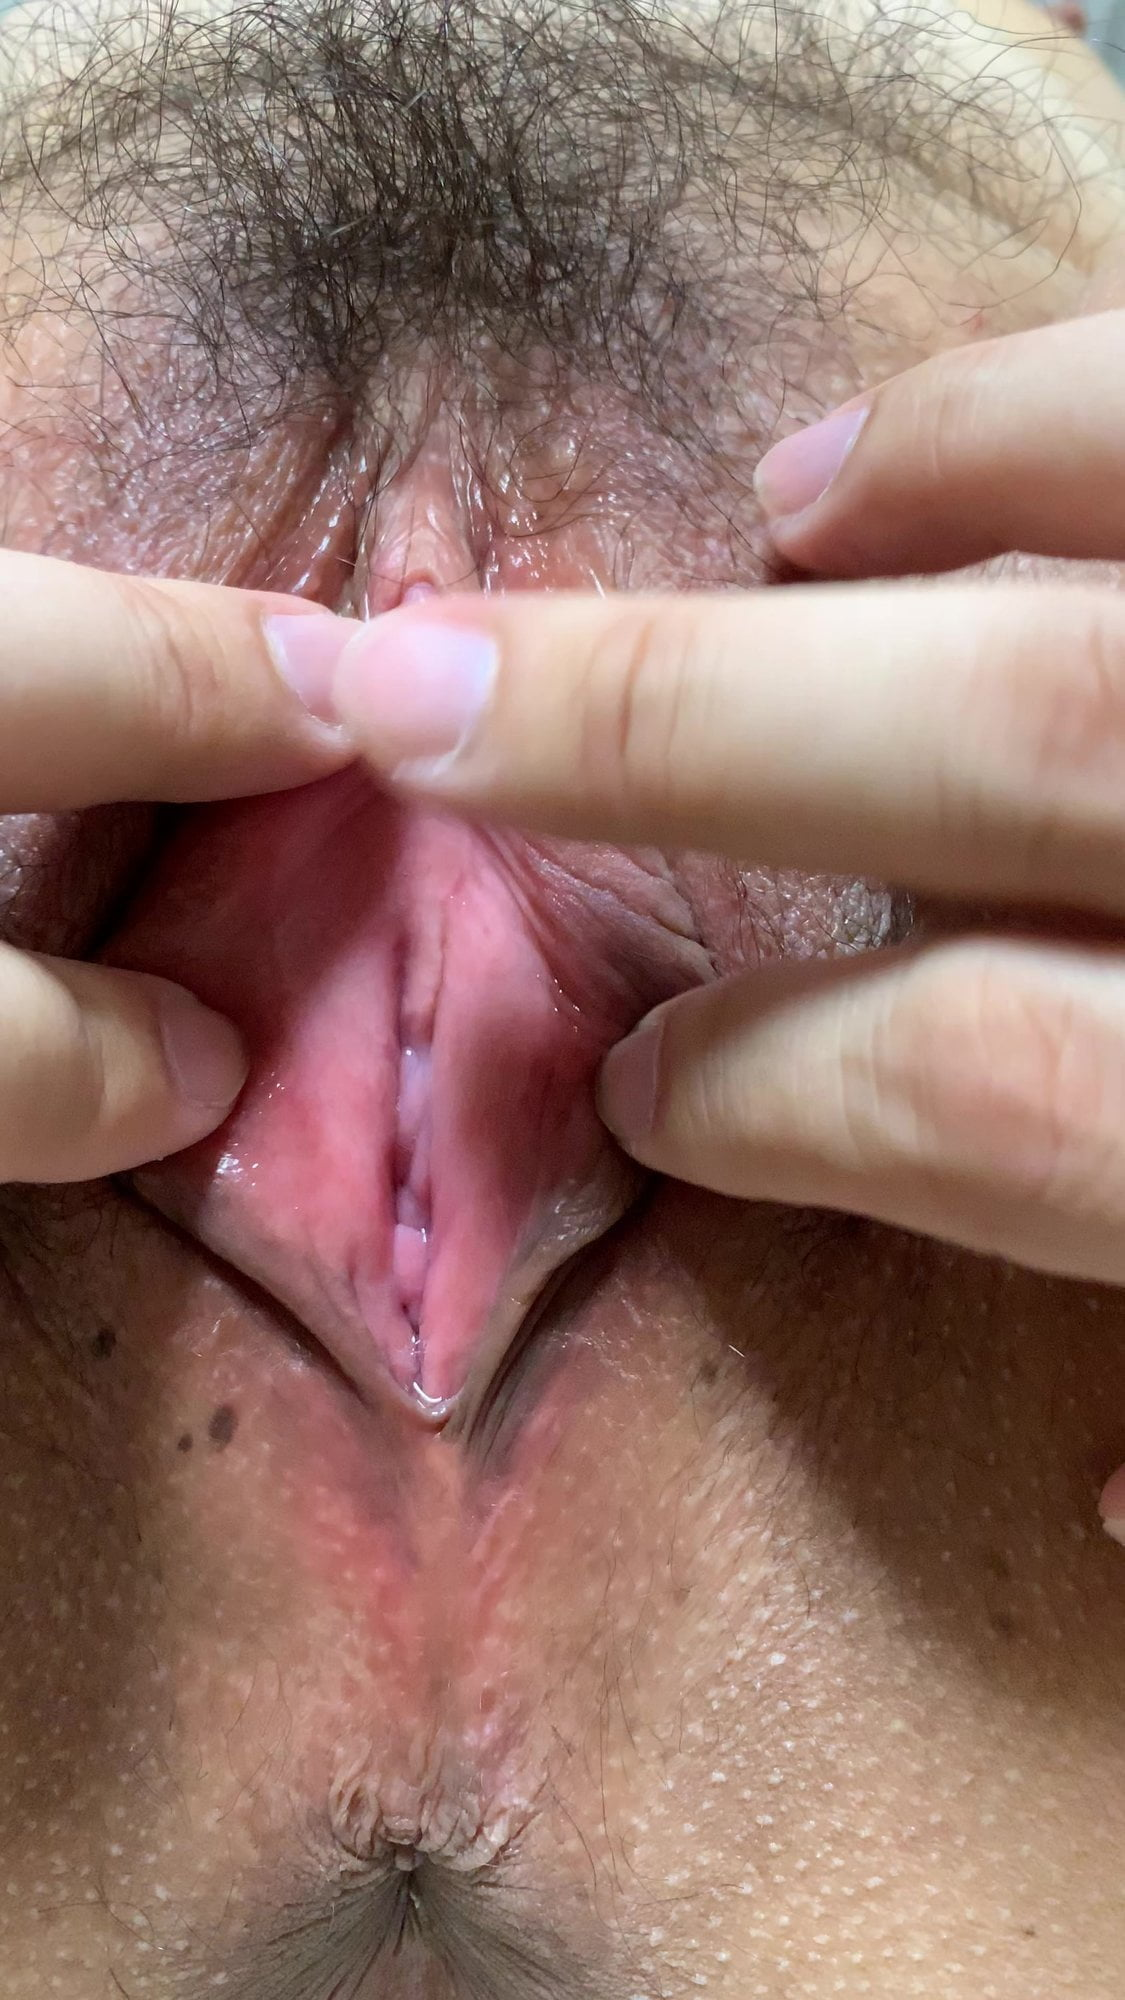 pussy-came-family-nudism-vids